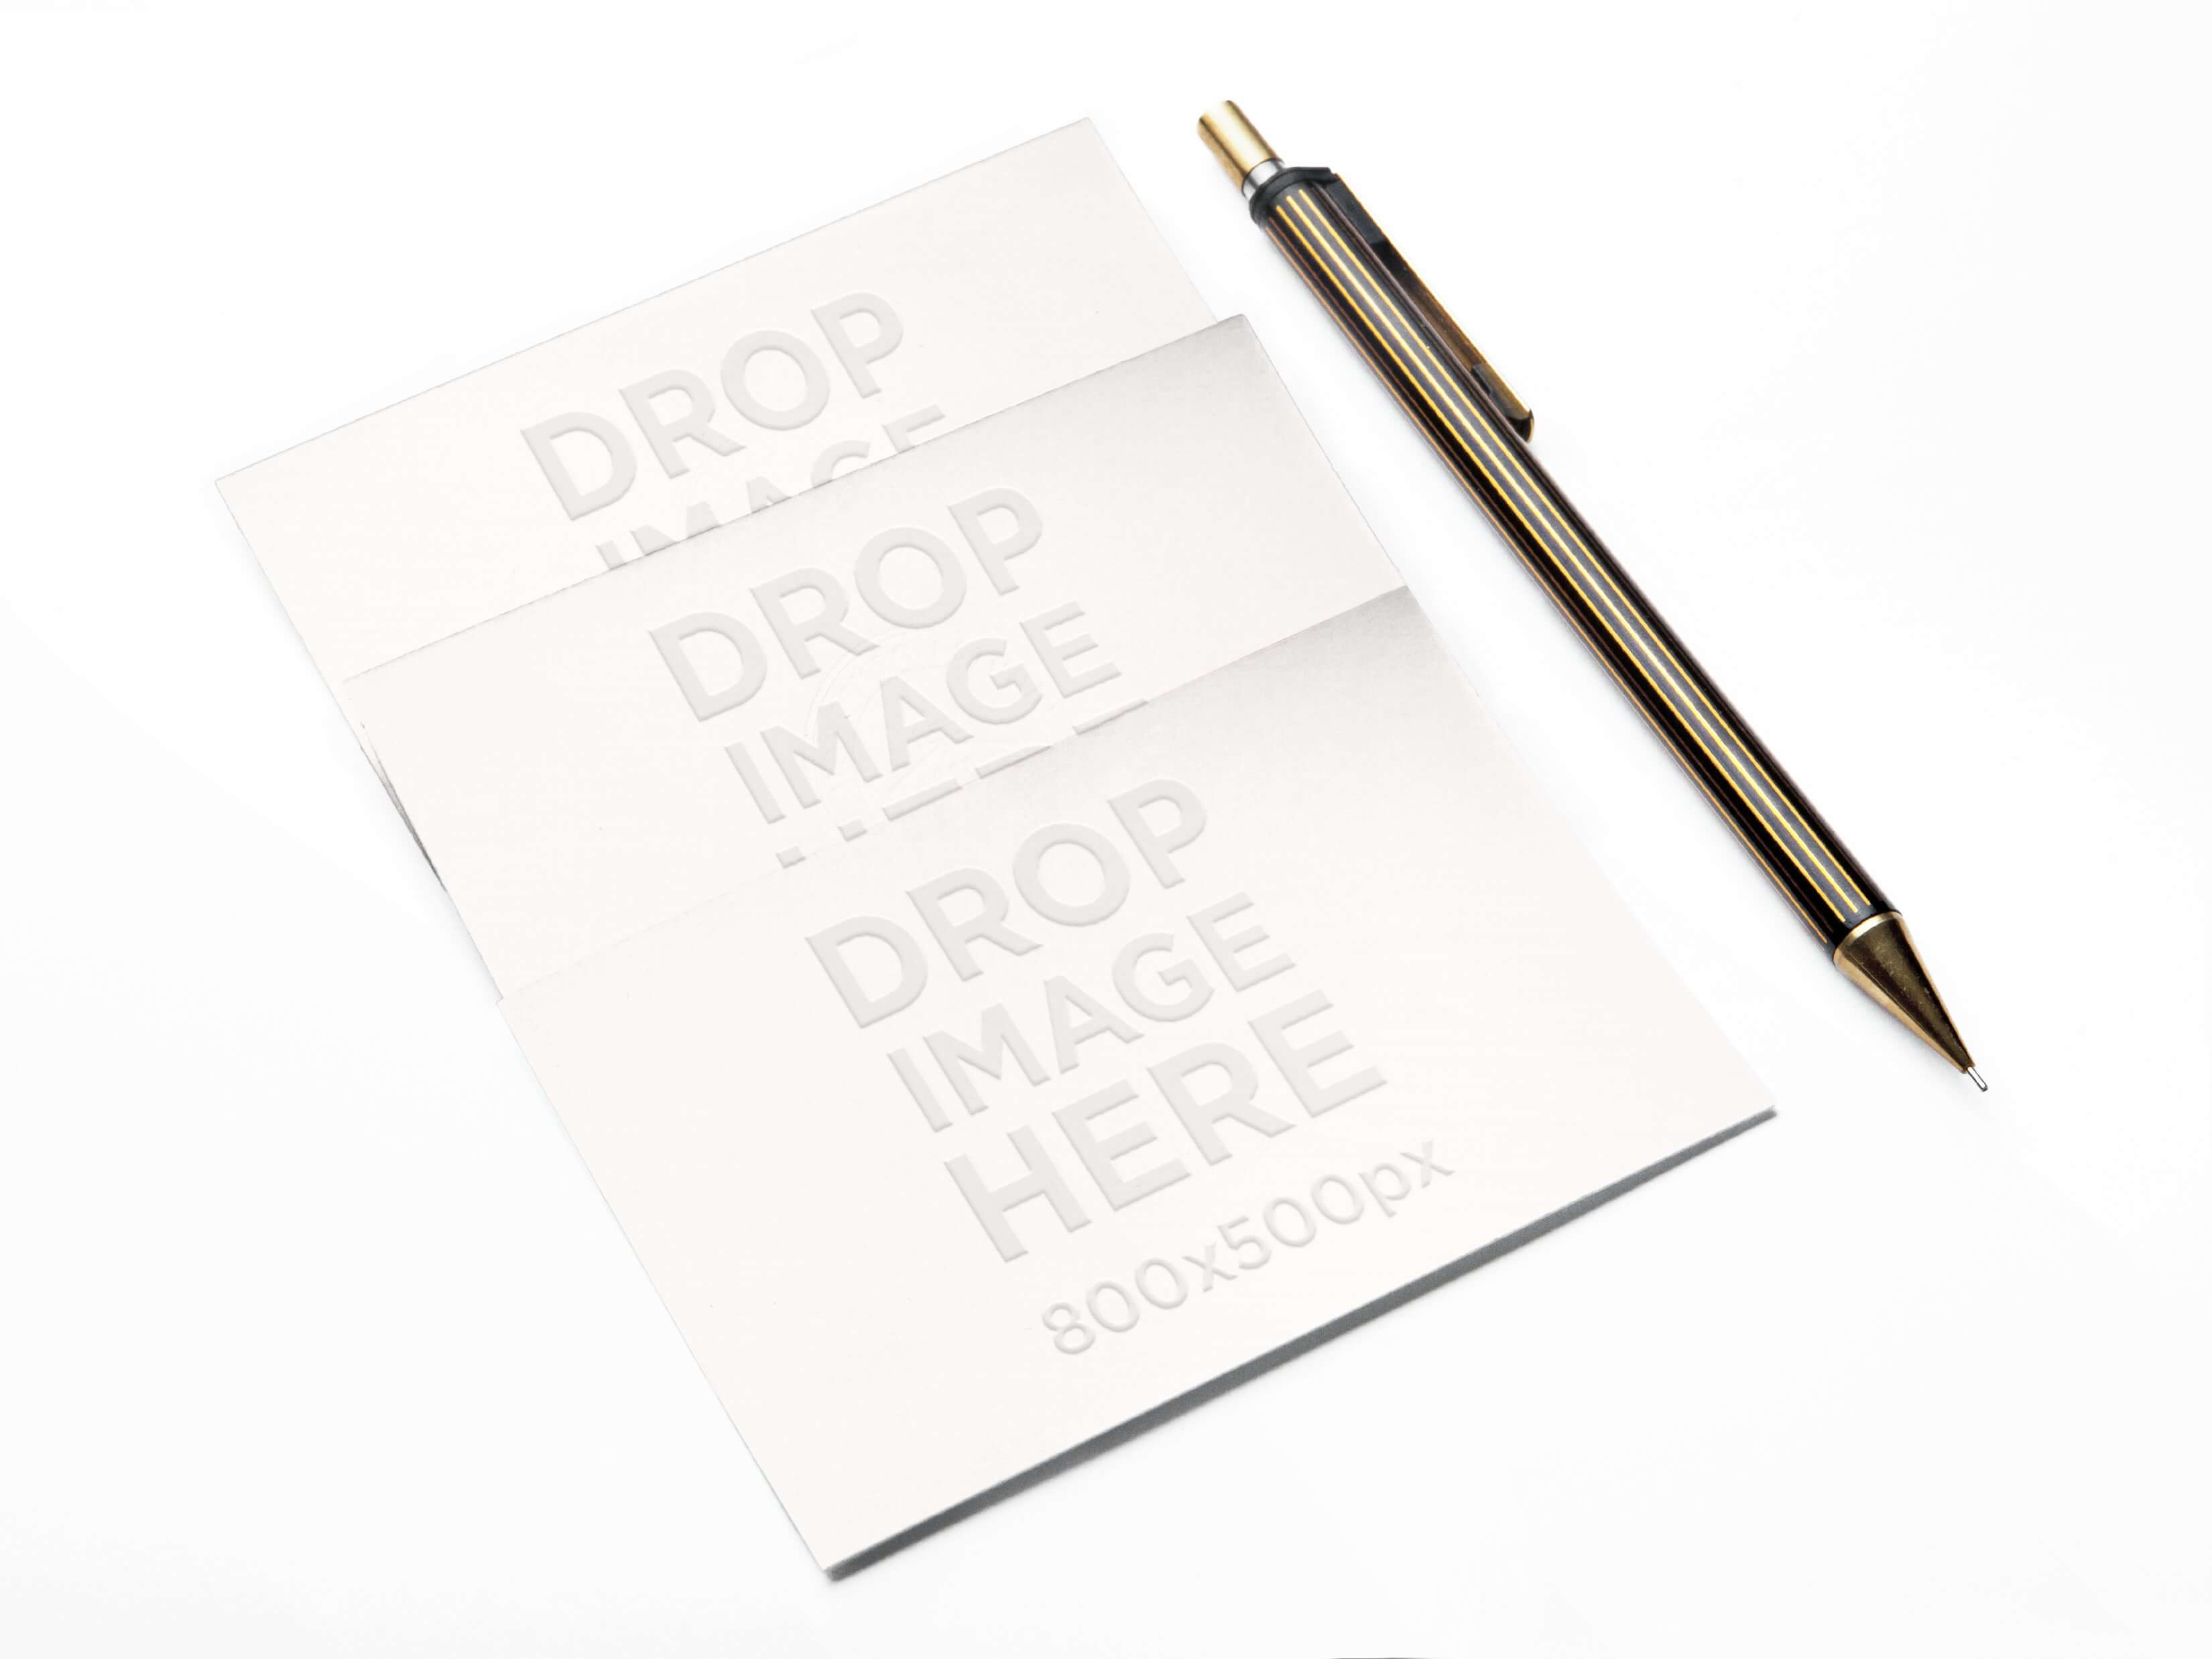 MOCKUP OF 3 BUSINESS CARDS LYING NEXT TO A METALLIC PEN